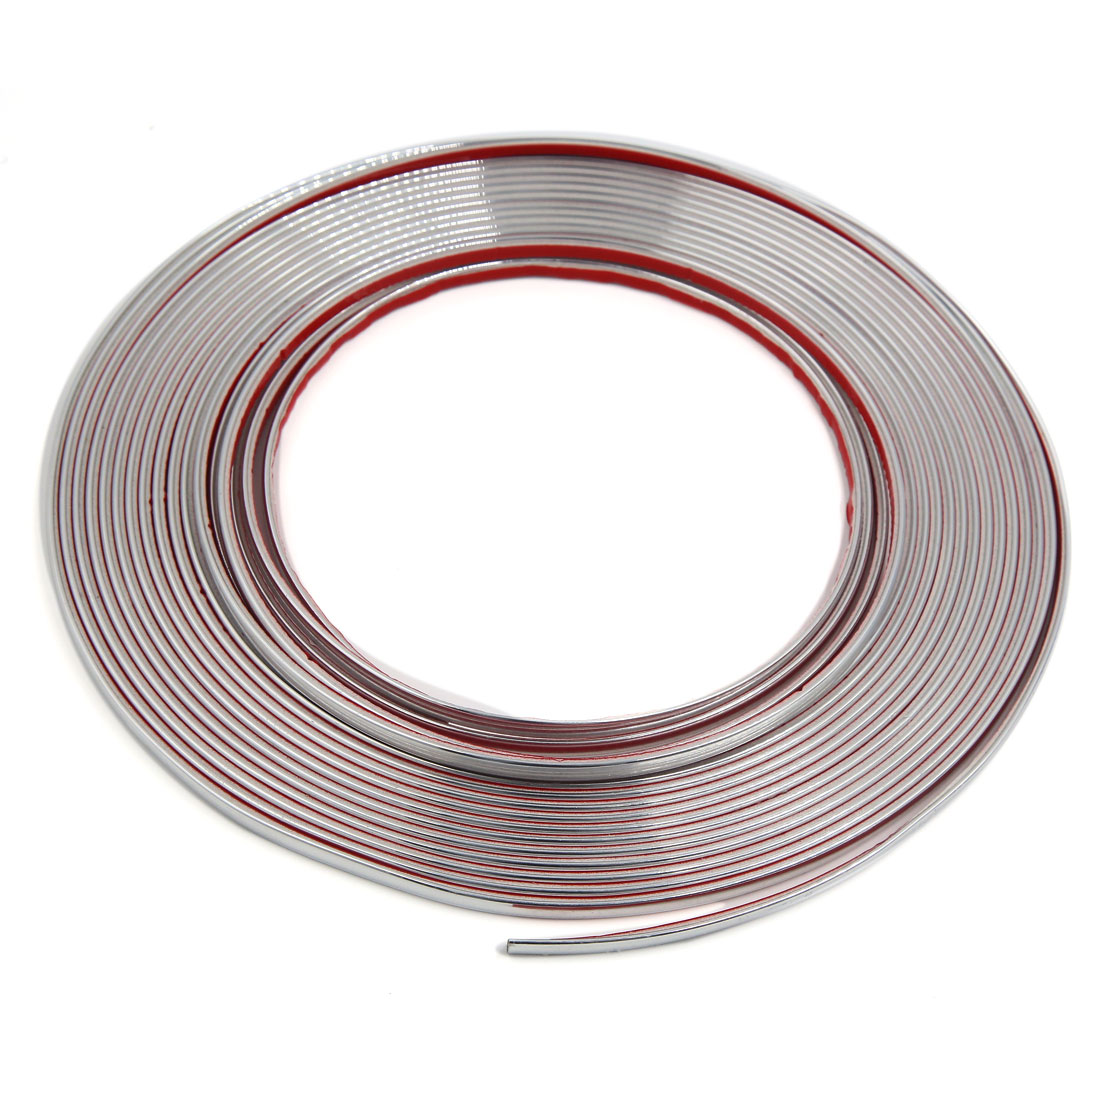 10mm Width Silver Tone Adhesive Door Edge Guard Protective Strip for Car